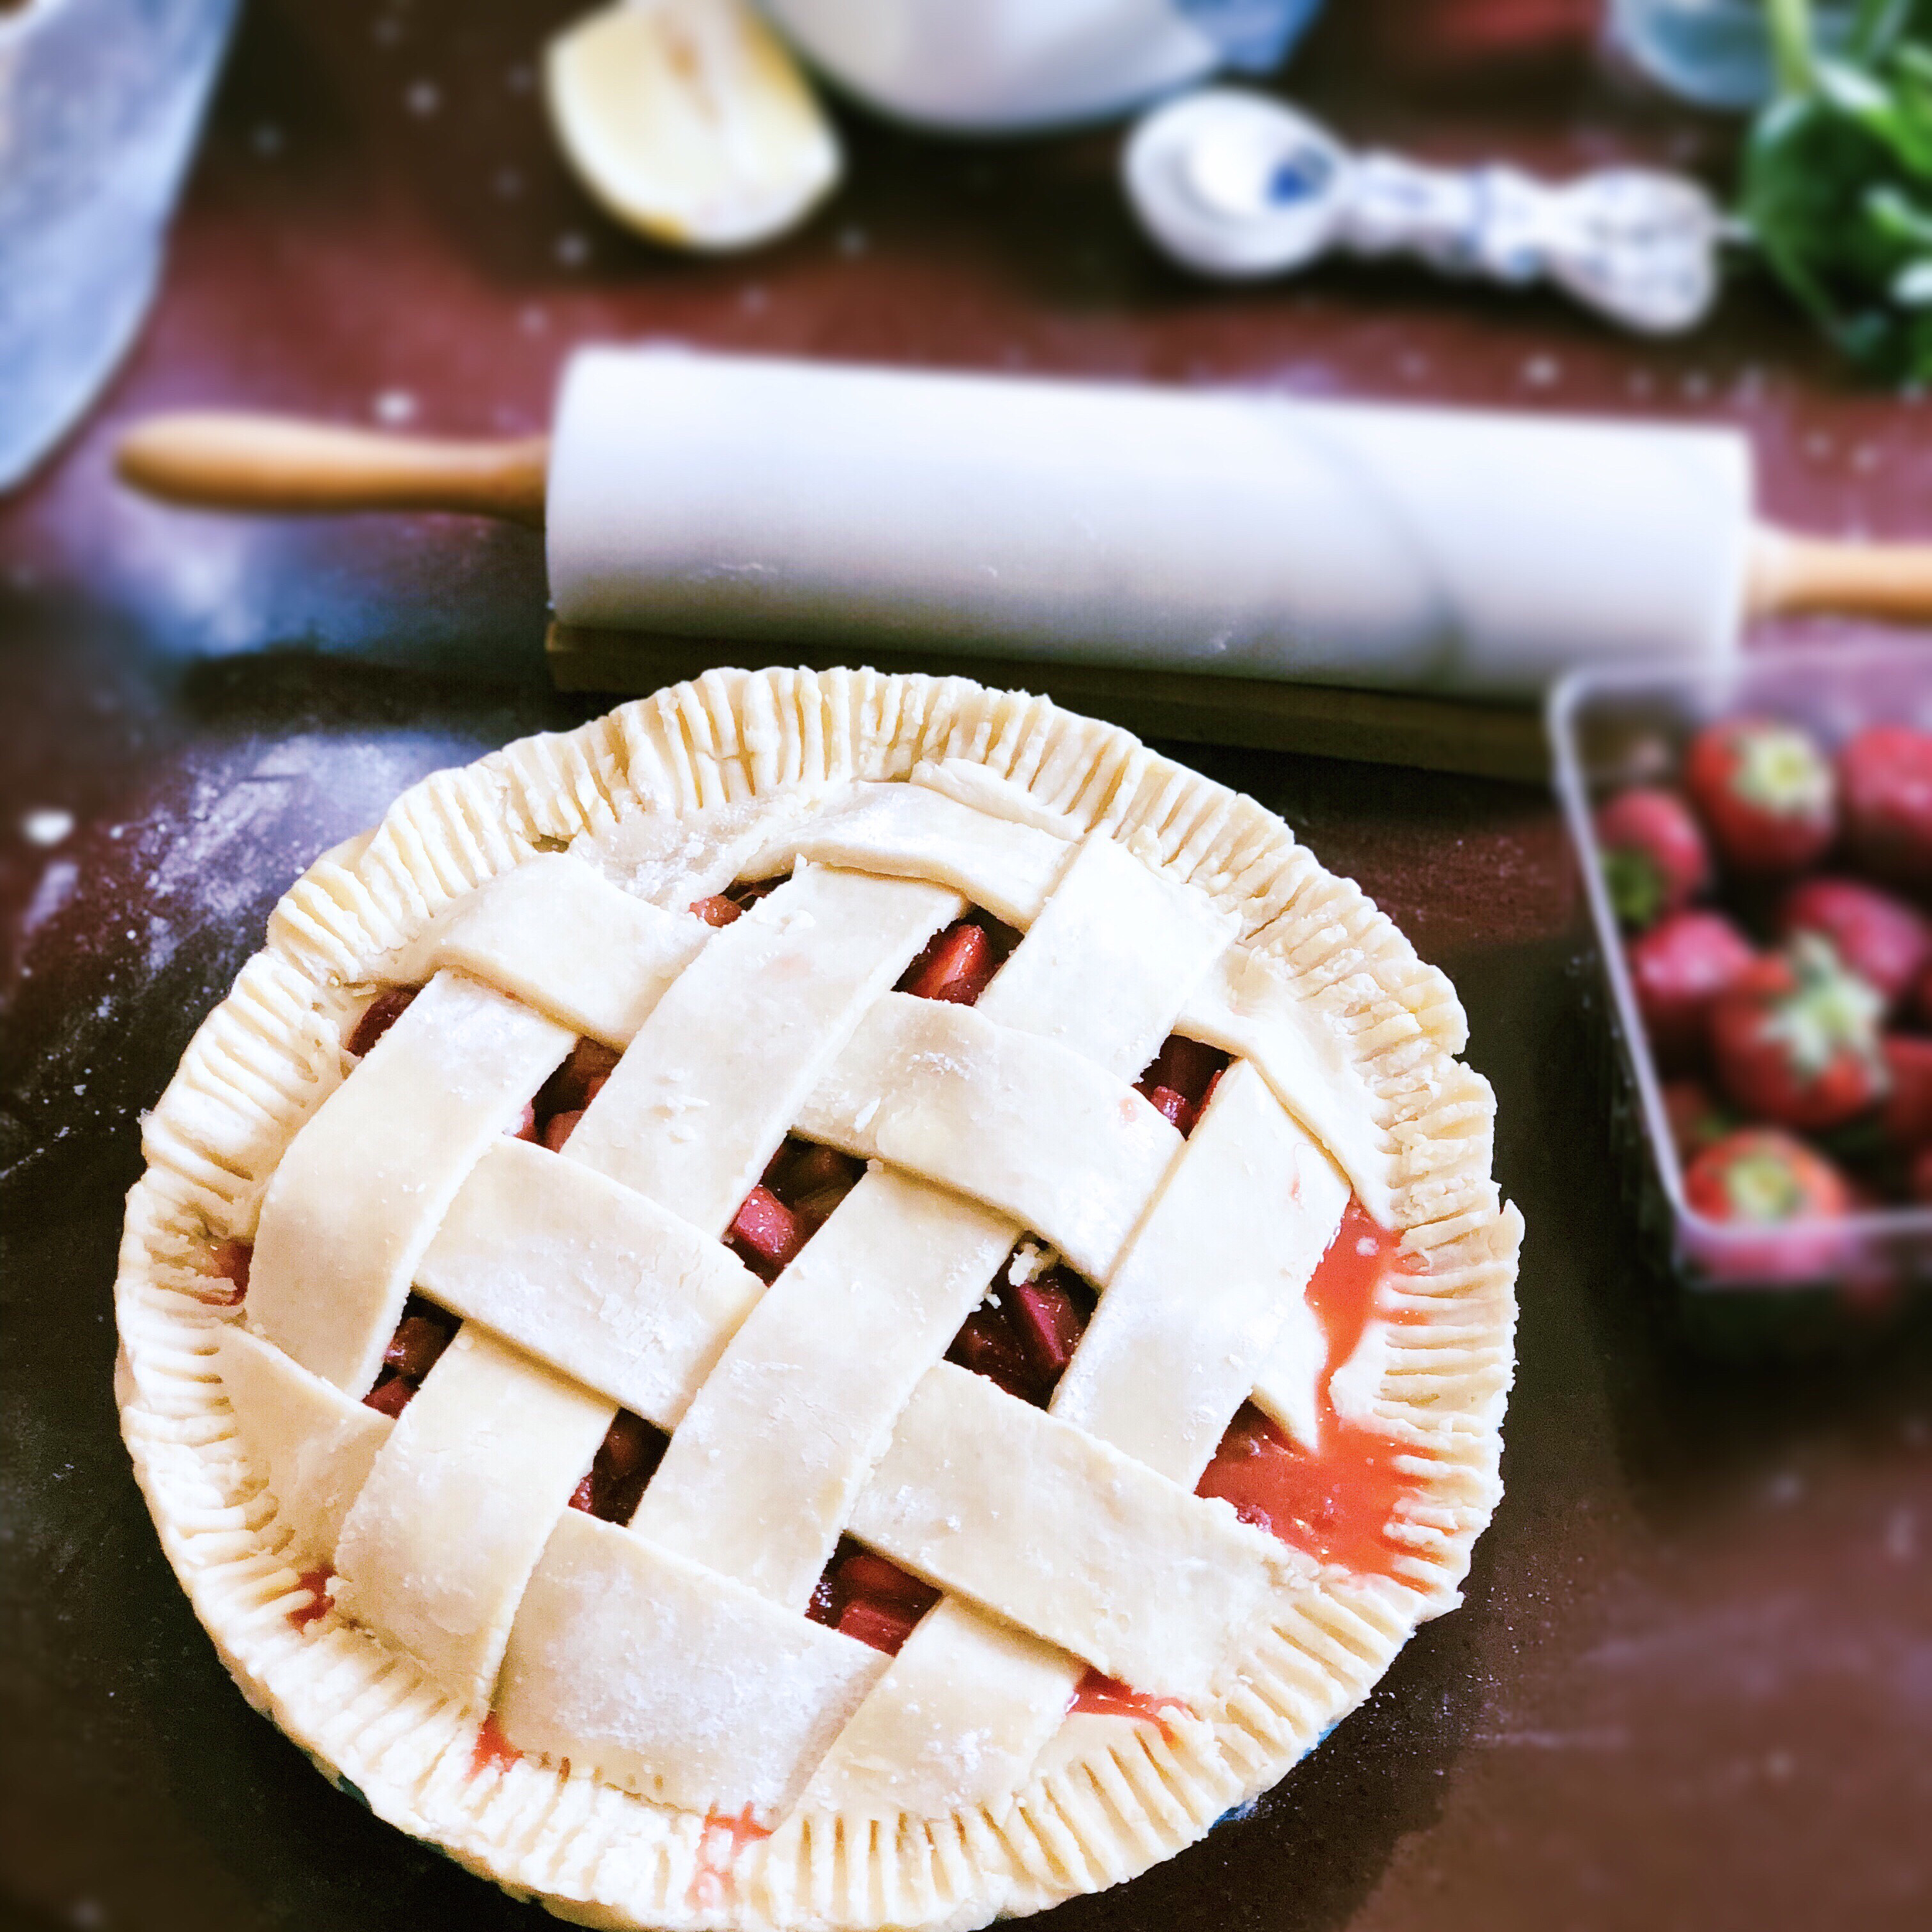 Strawberry Rhubarb Pie - Time: 1 hour prep30 minutes freezer1 hour in the oven